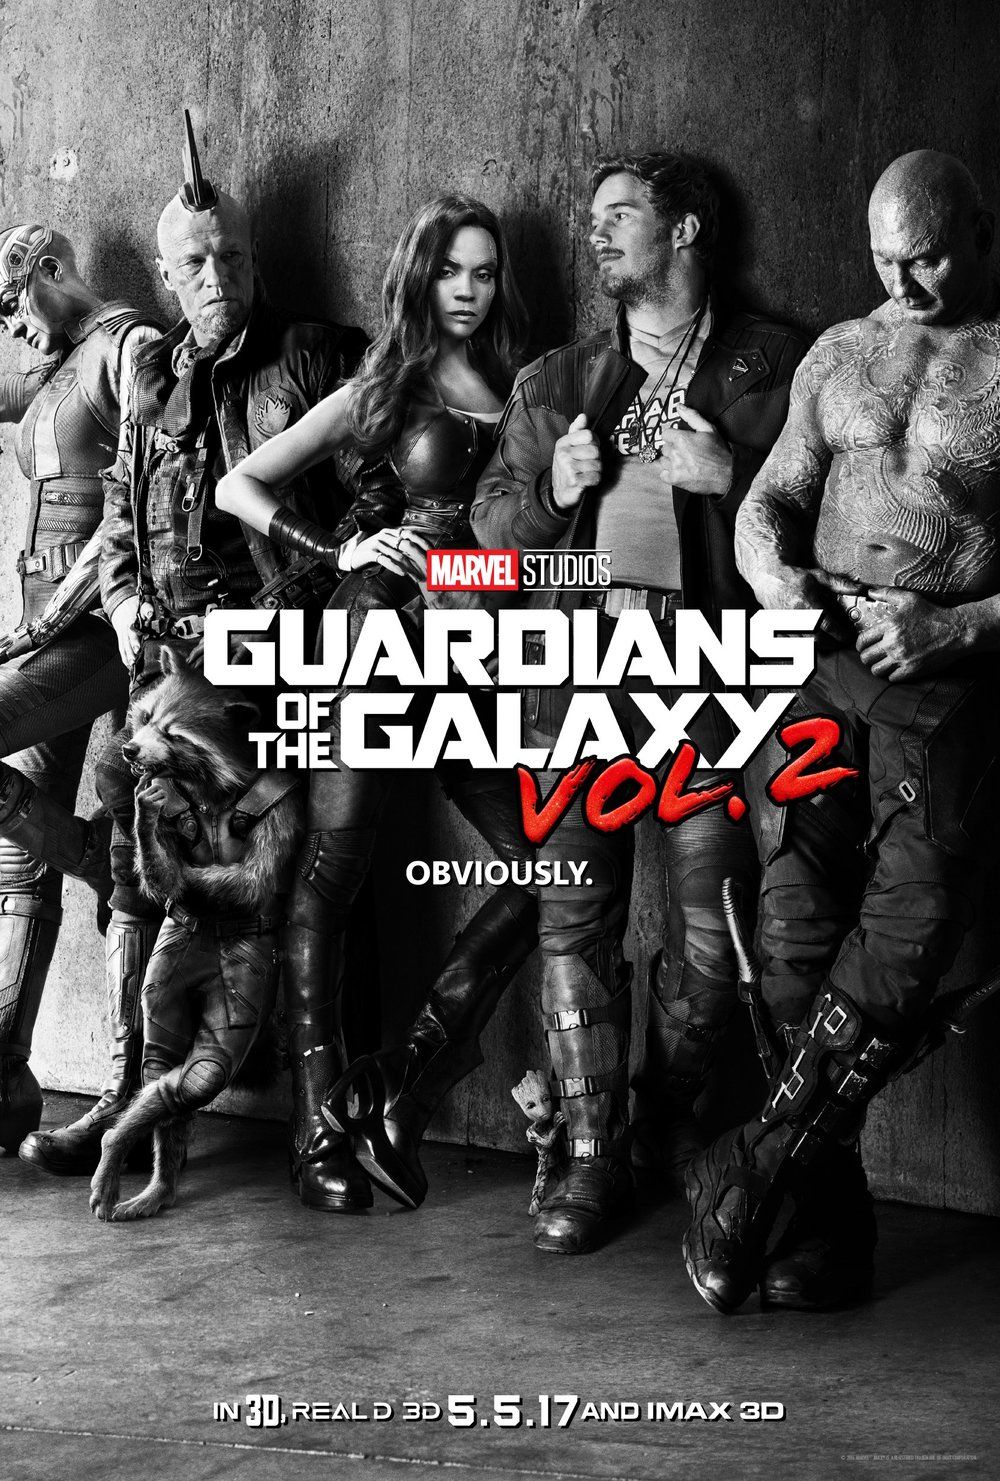 guardiansofthegalaxy2-teaserposter-full-highquality.jpg